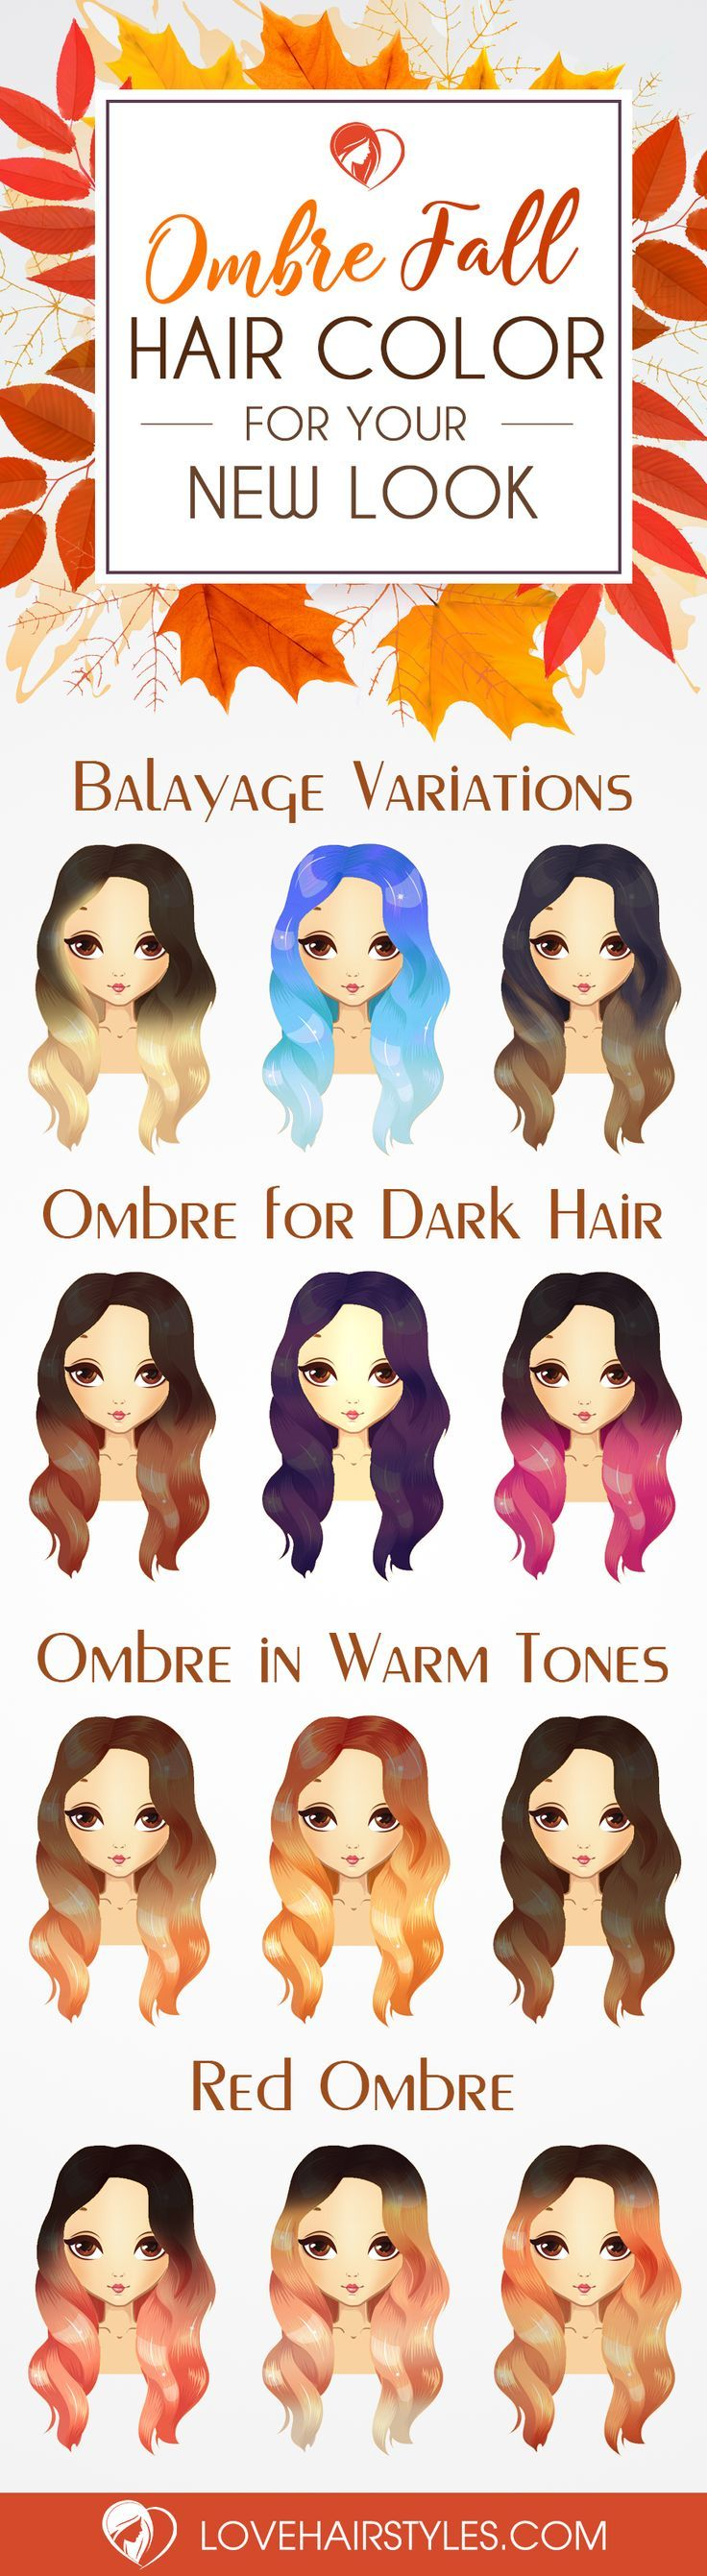 Ombre fall hair colors look best when combined correctly. How should you know wh...